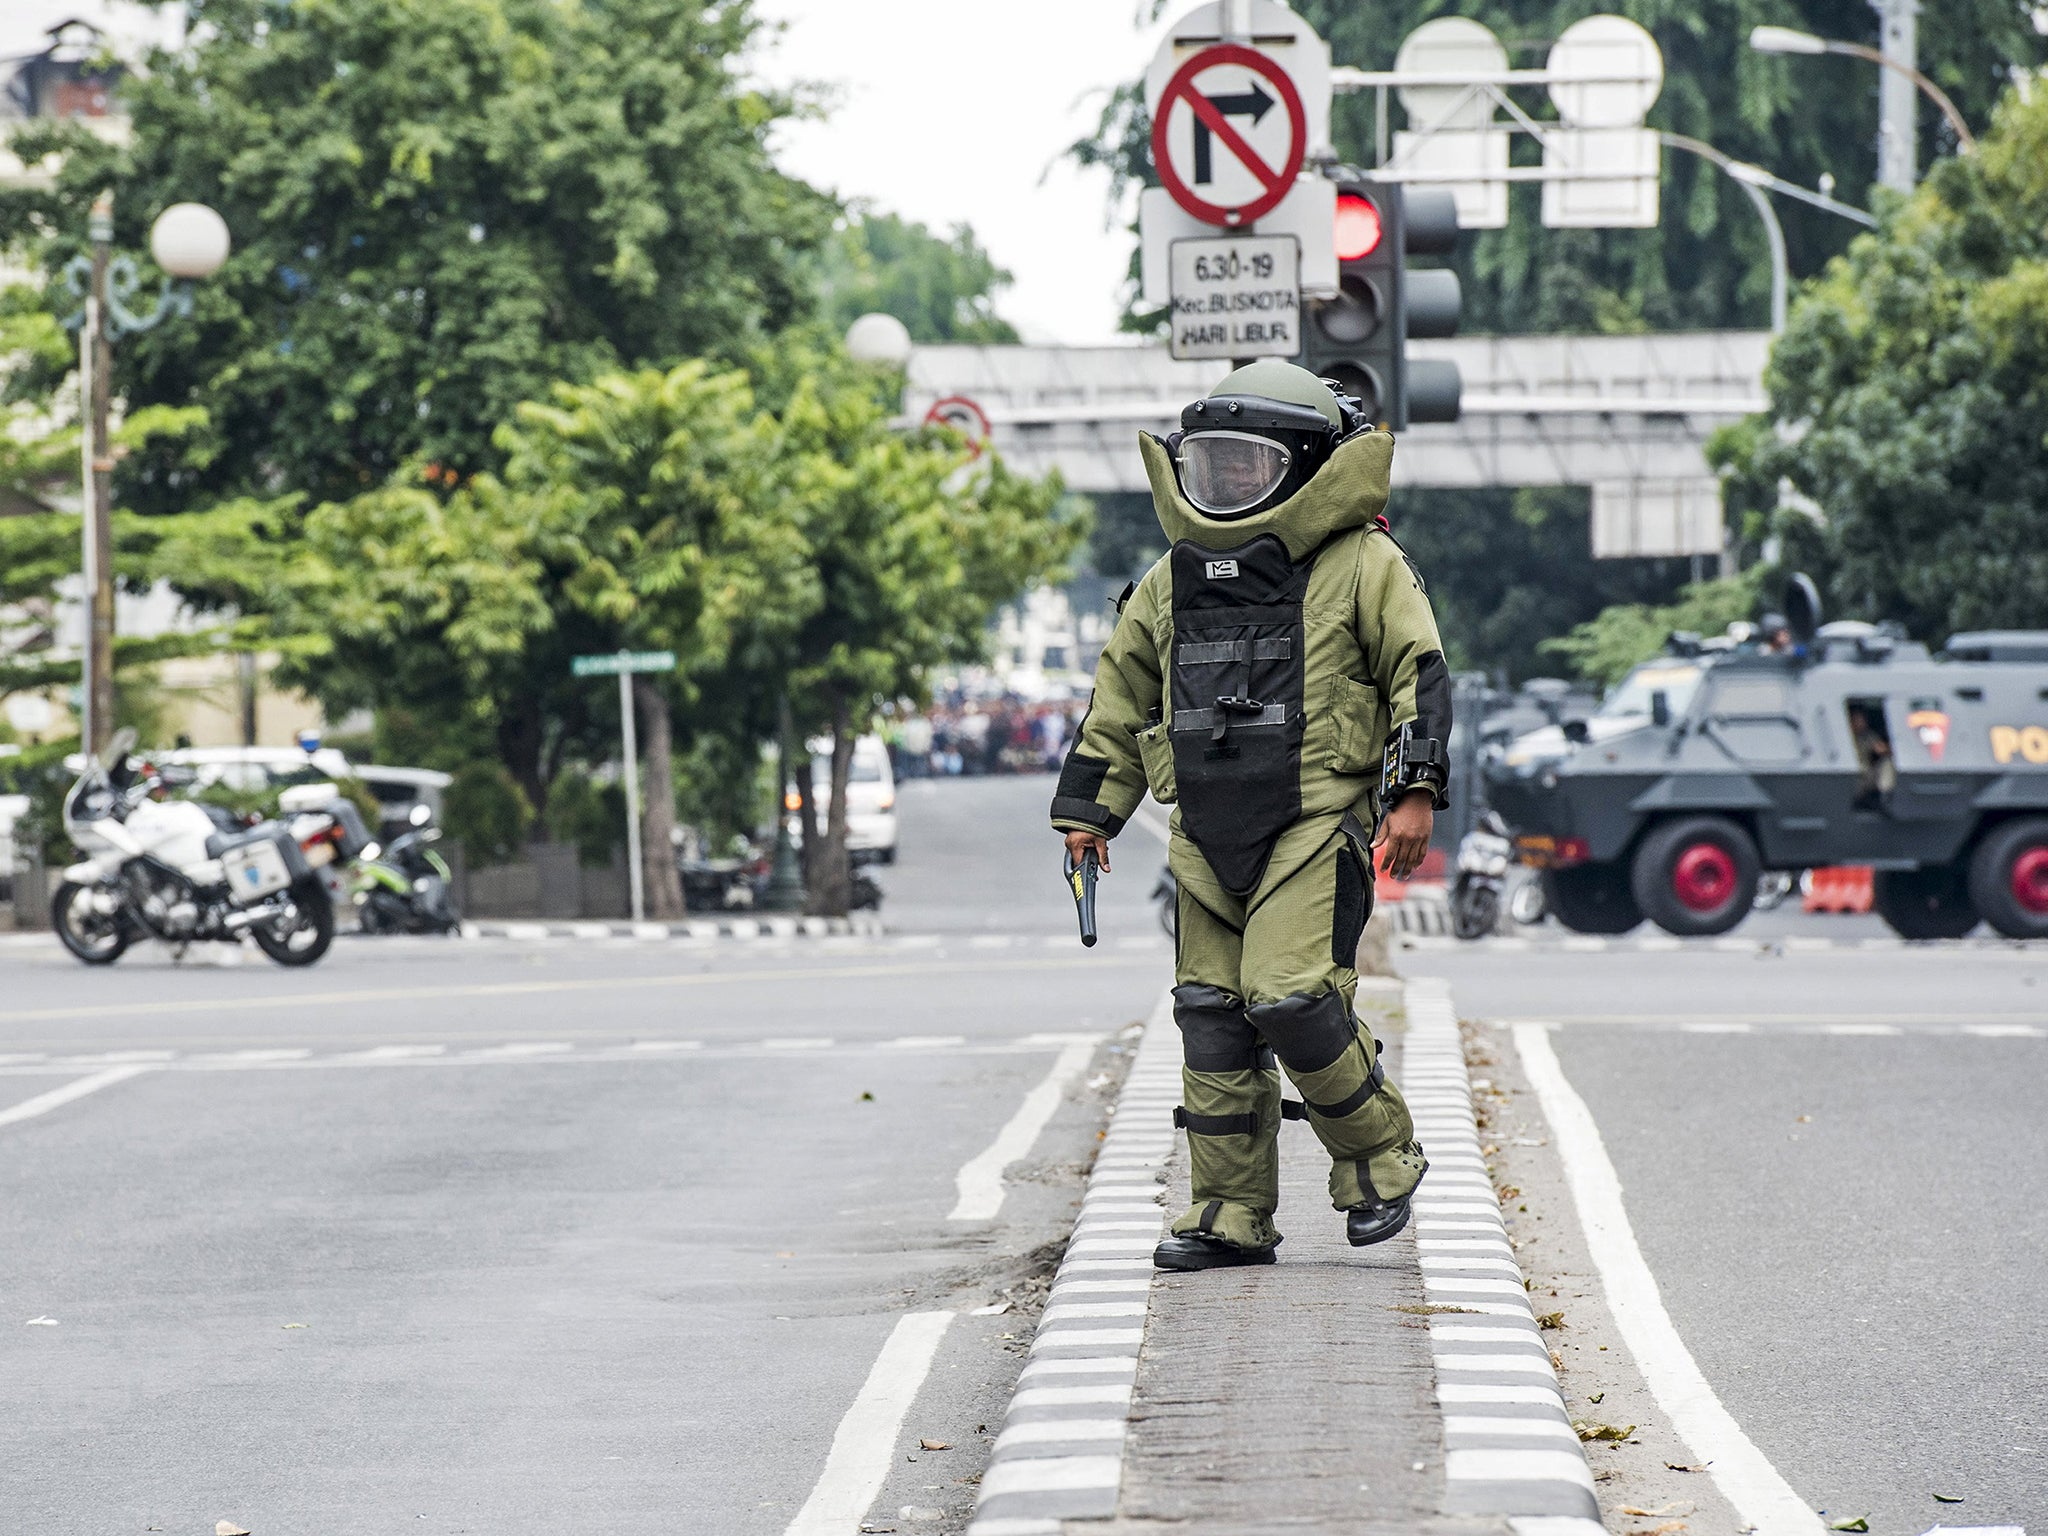 Jakarta attacks: Indonesians defy terror with powerful message on social media - 'we are not afraid'